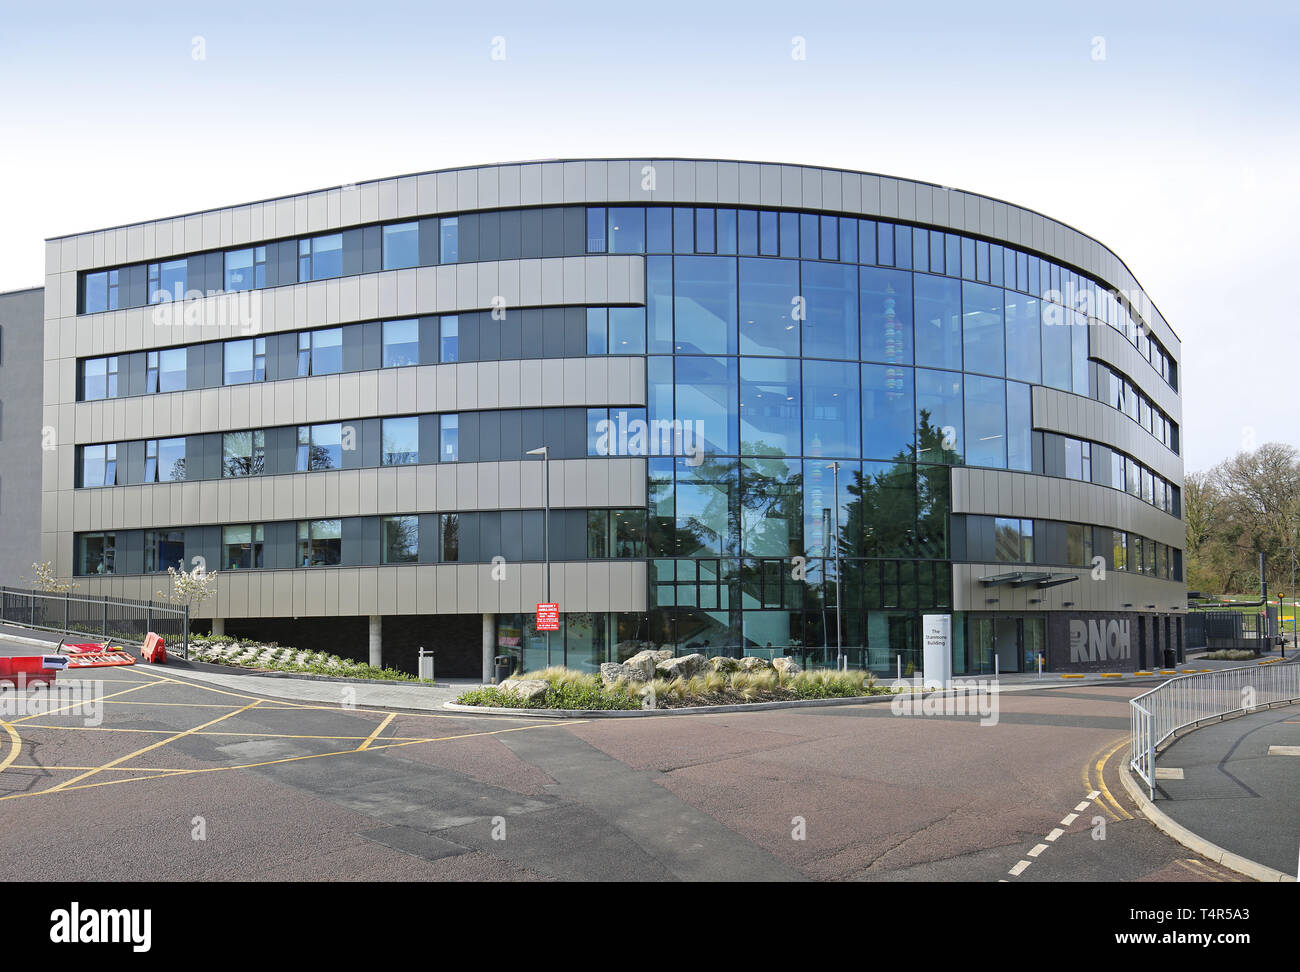 Exterior of the new Stanmore Building at the Royal National Orthopaedic Hospital in Stanmore, north London, UK - Stock Image